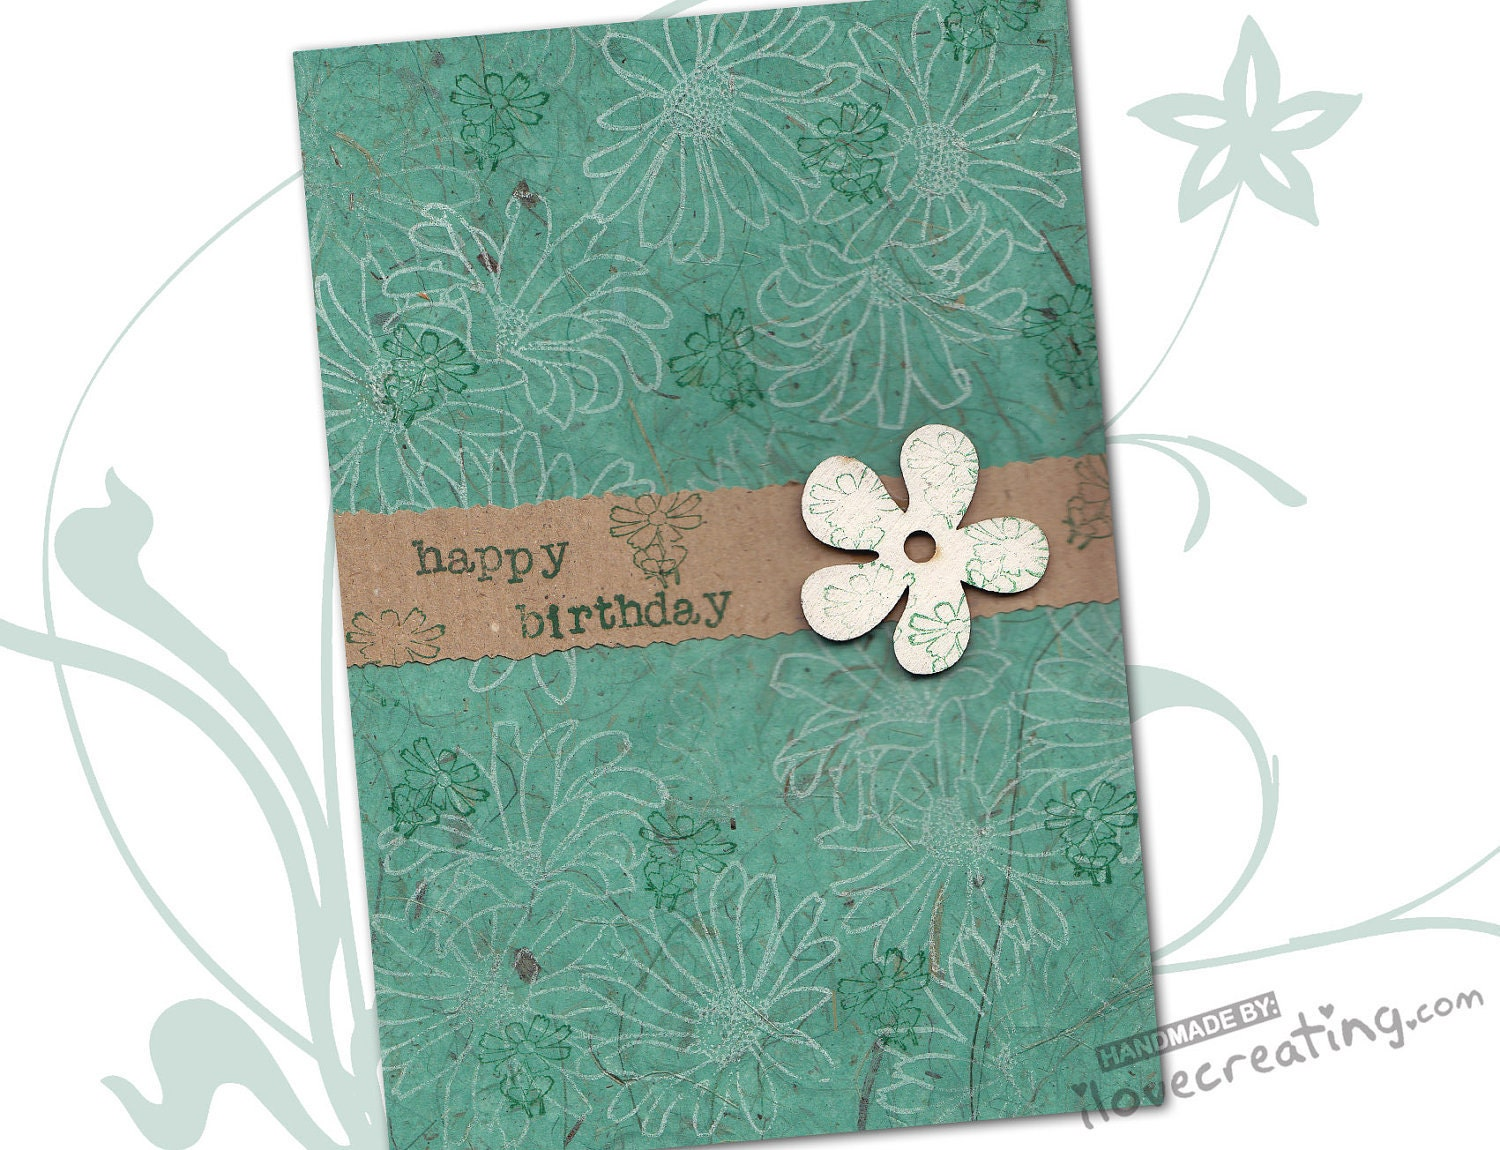 Personalized HAPPY BIRTHDAY CARD Handmade Mint color Greeting Card with flower wooden shape - ilovecreatingcards